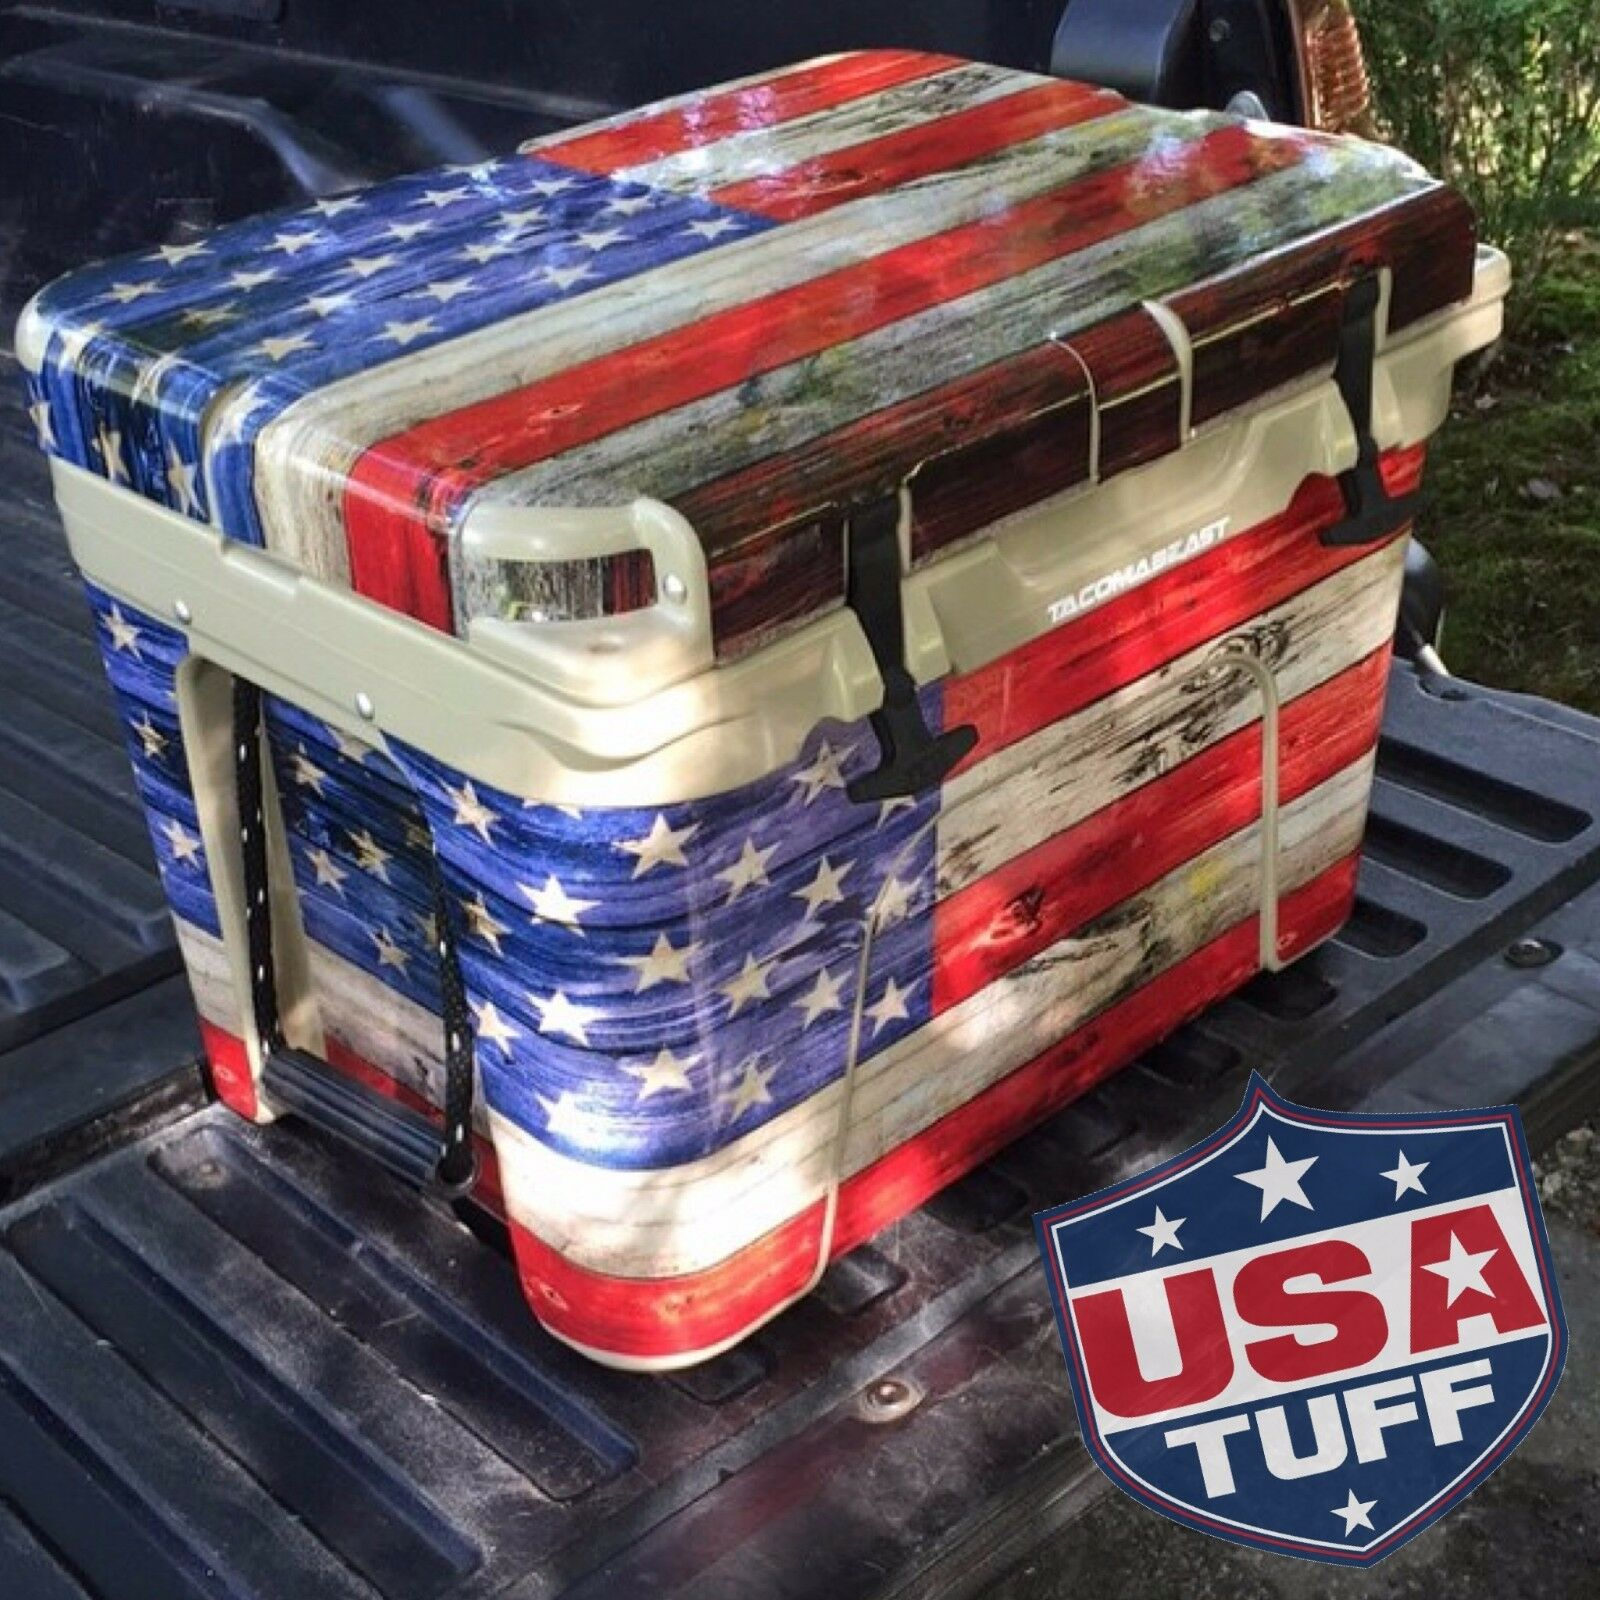 USATuff Custom Cooler Decal Wrap fits YETI Tundra 75qt FULL Snow Snow FULL Camo e86451